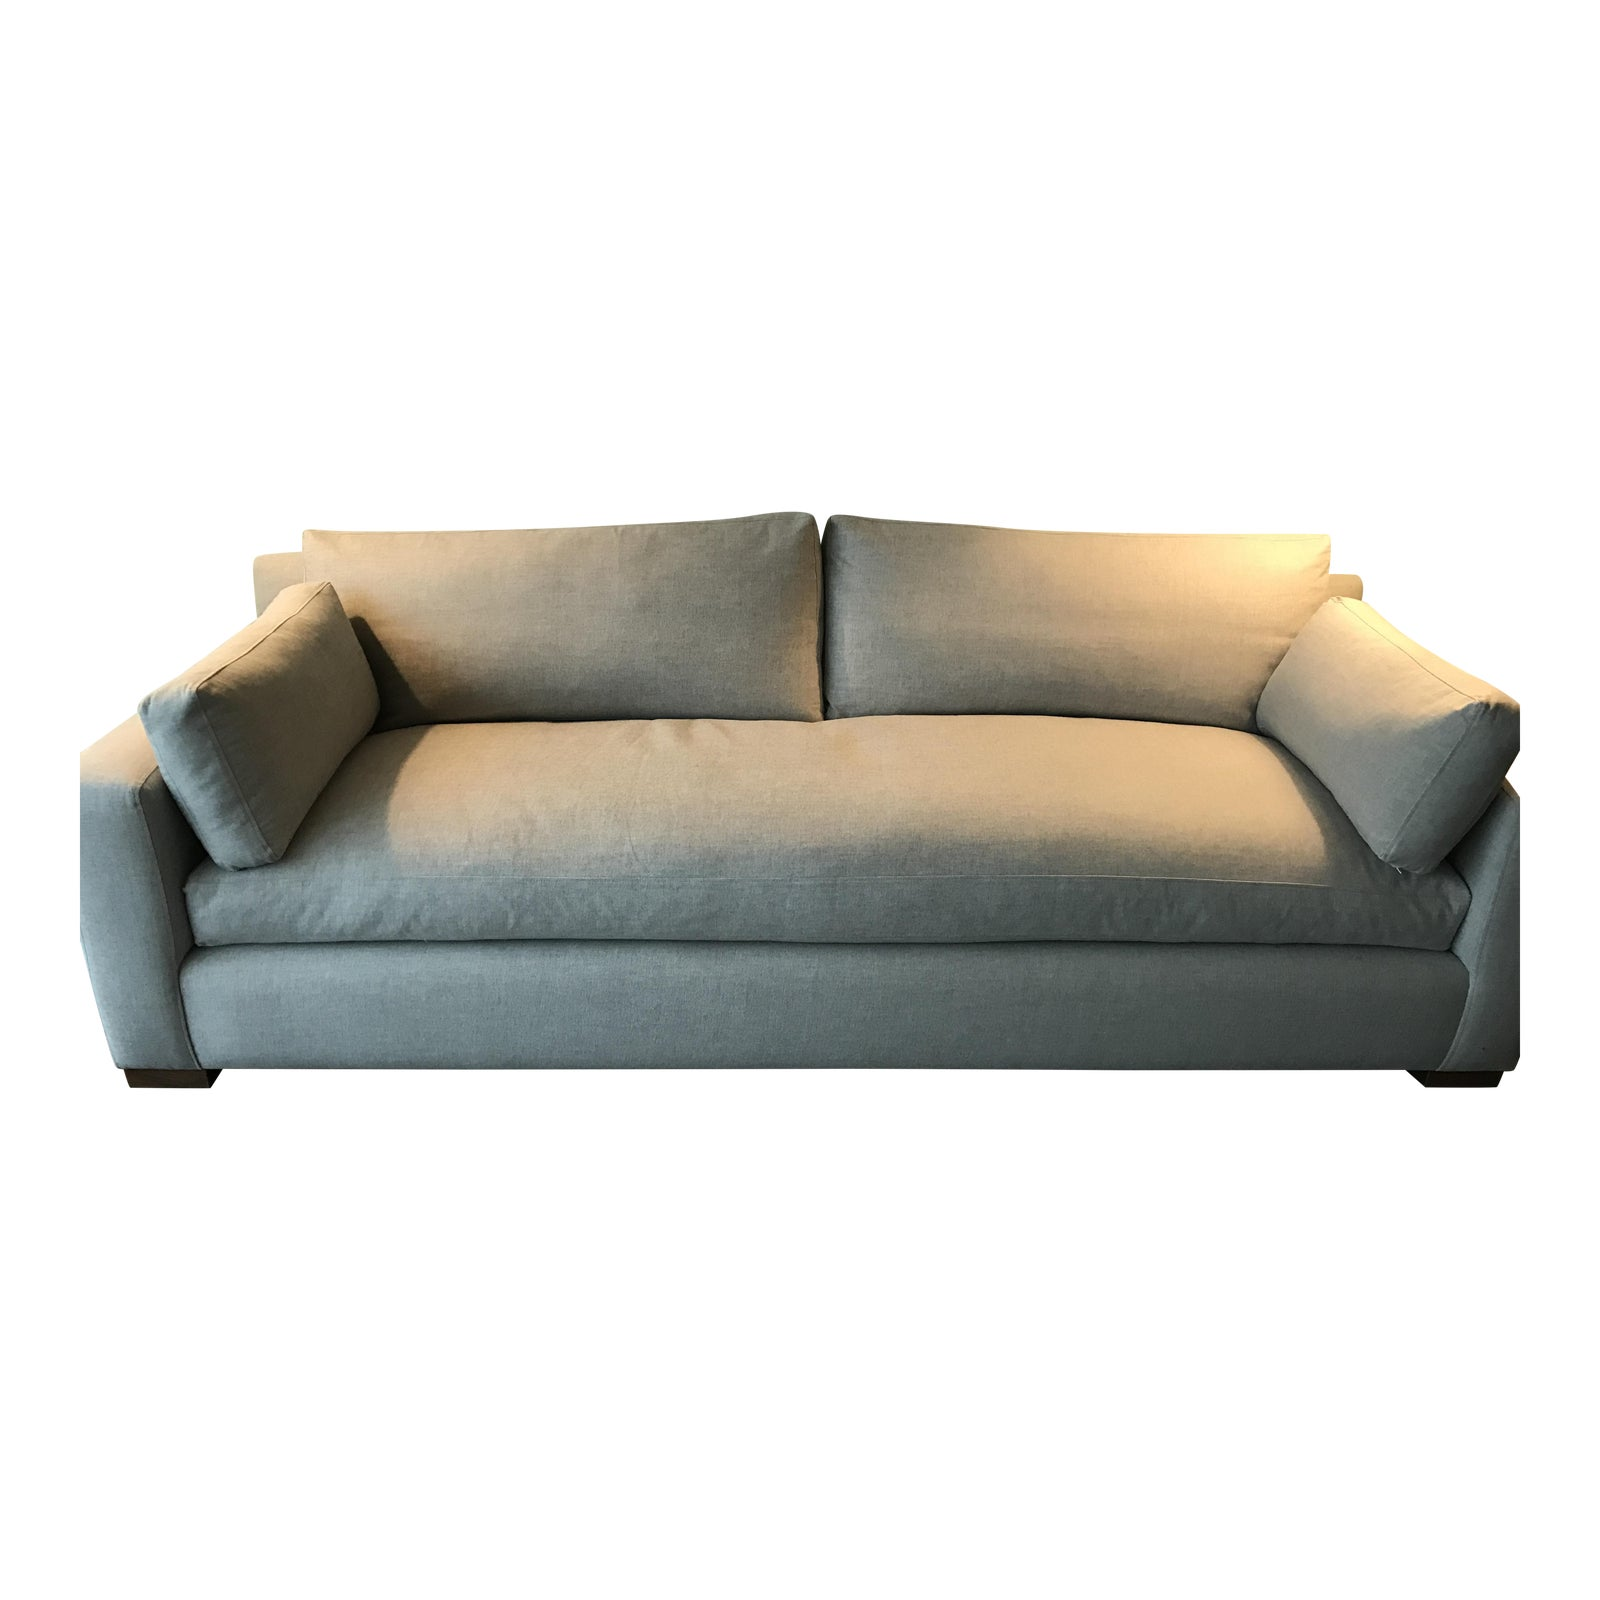 Groovy Sofas By Stanley Sofa Ideas Beatyapartments Chair Design Images Beatyapartmentscom